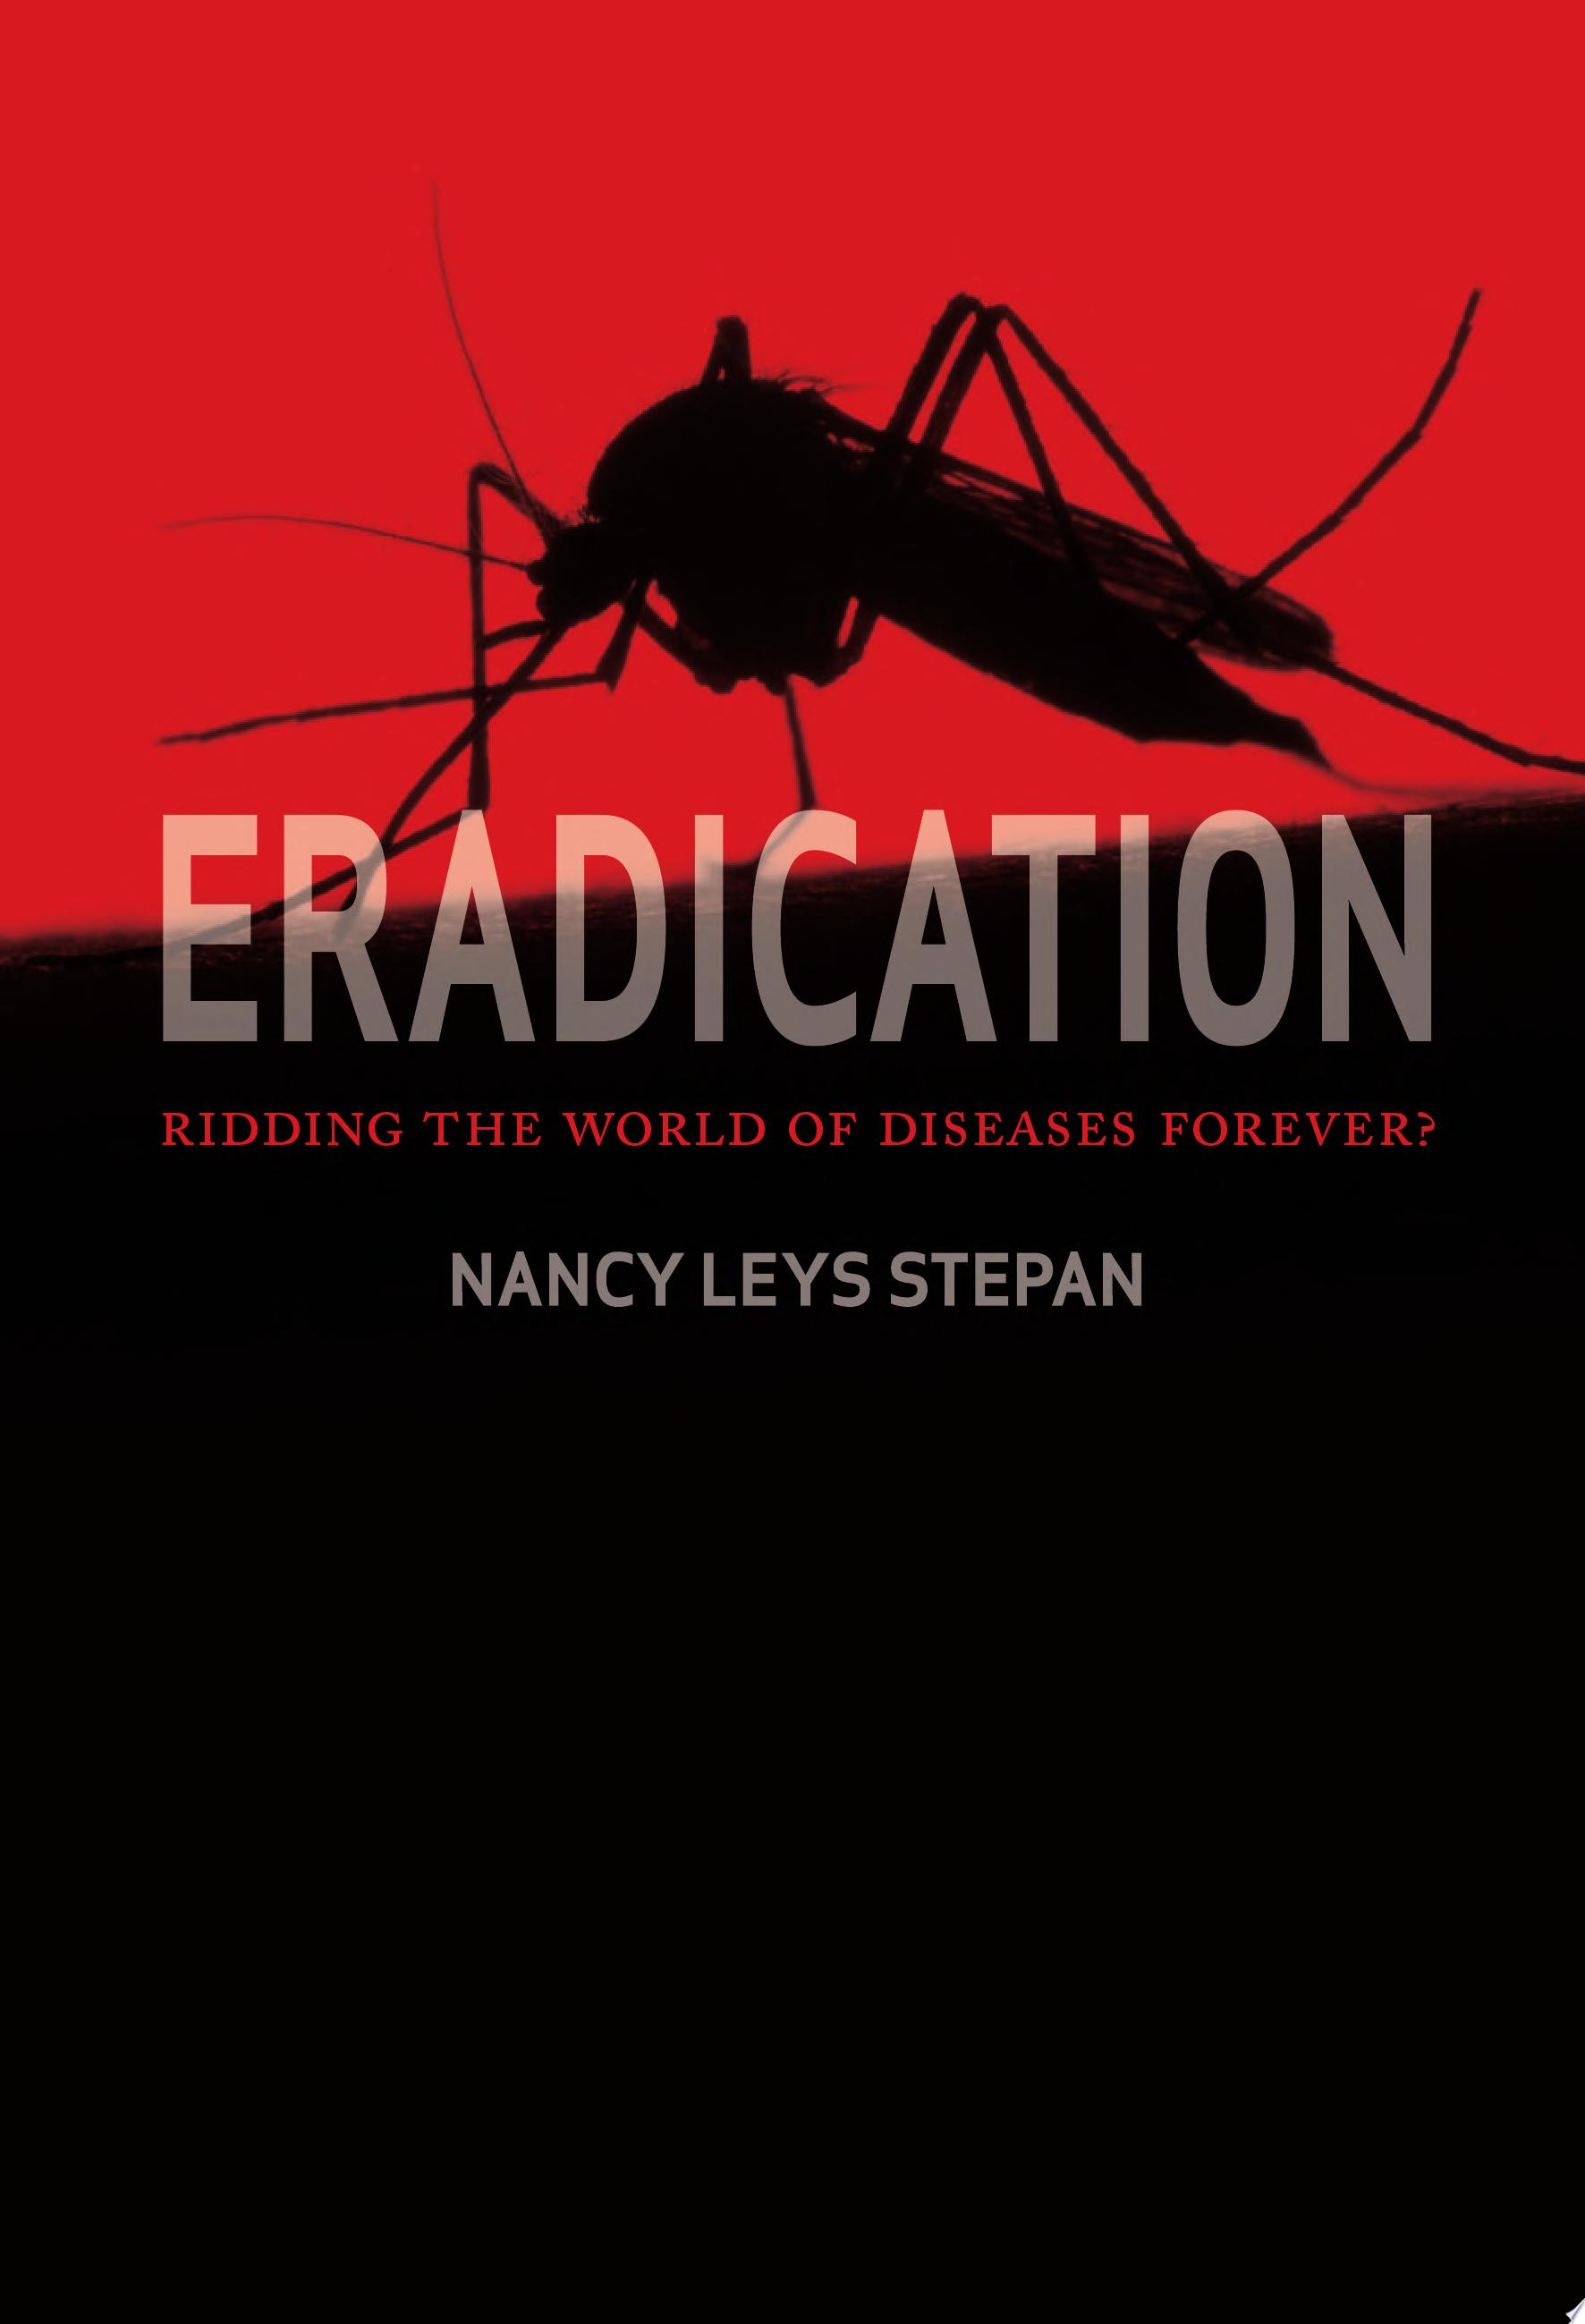 Eradication